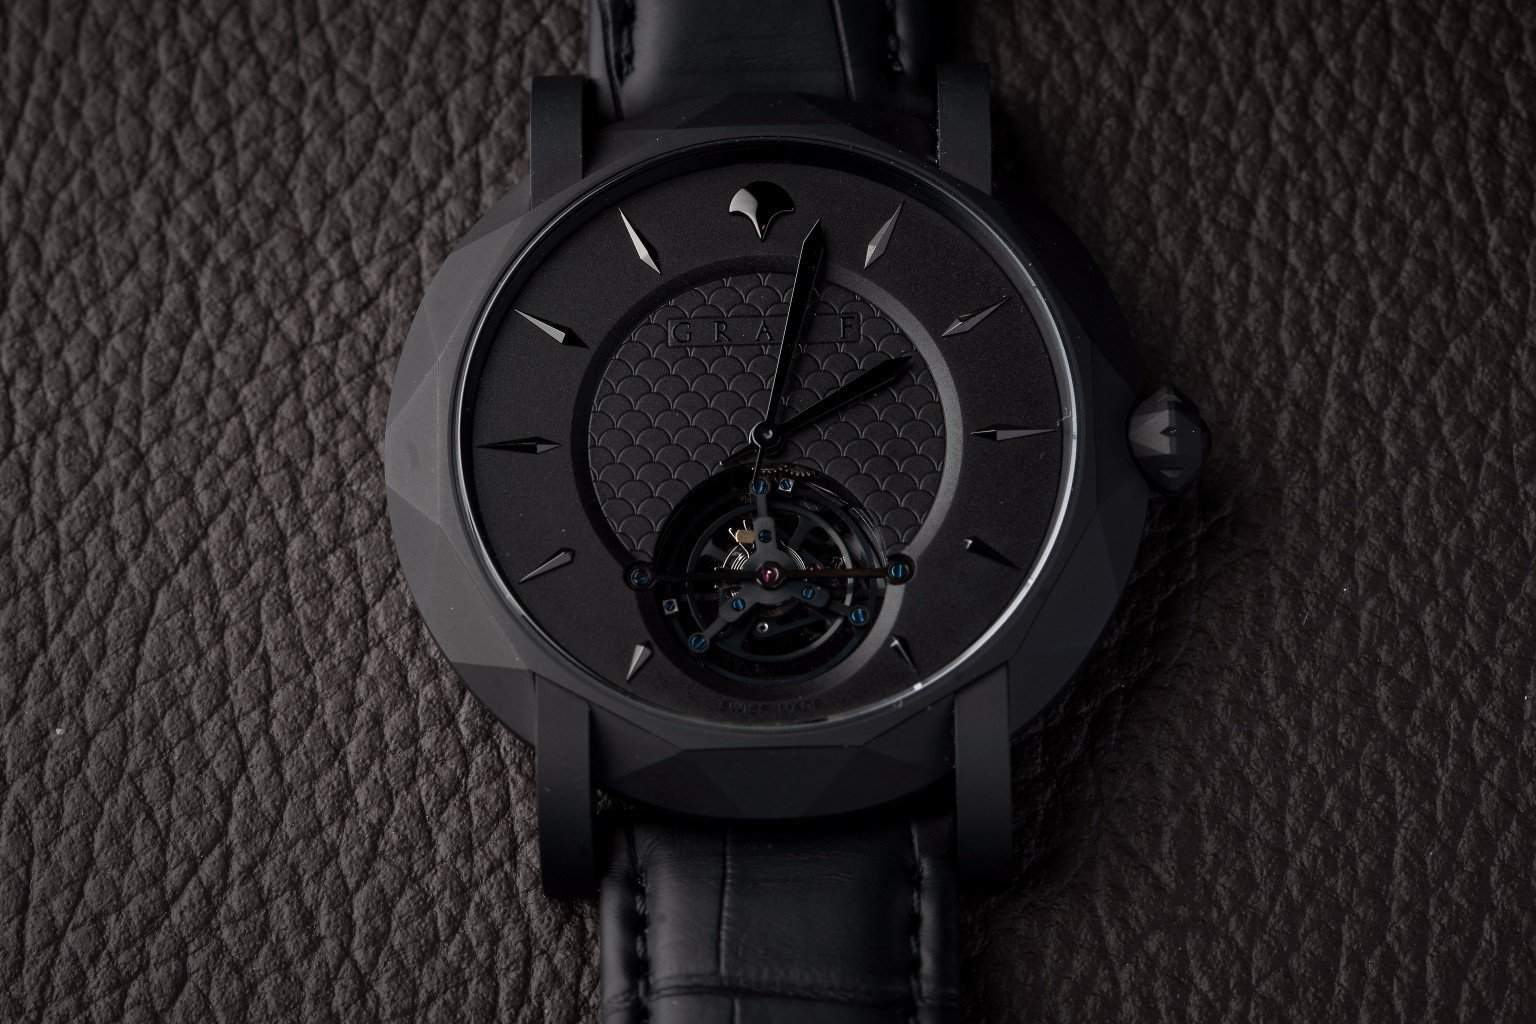 Graff Eclipse Tourbillon